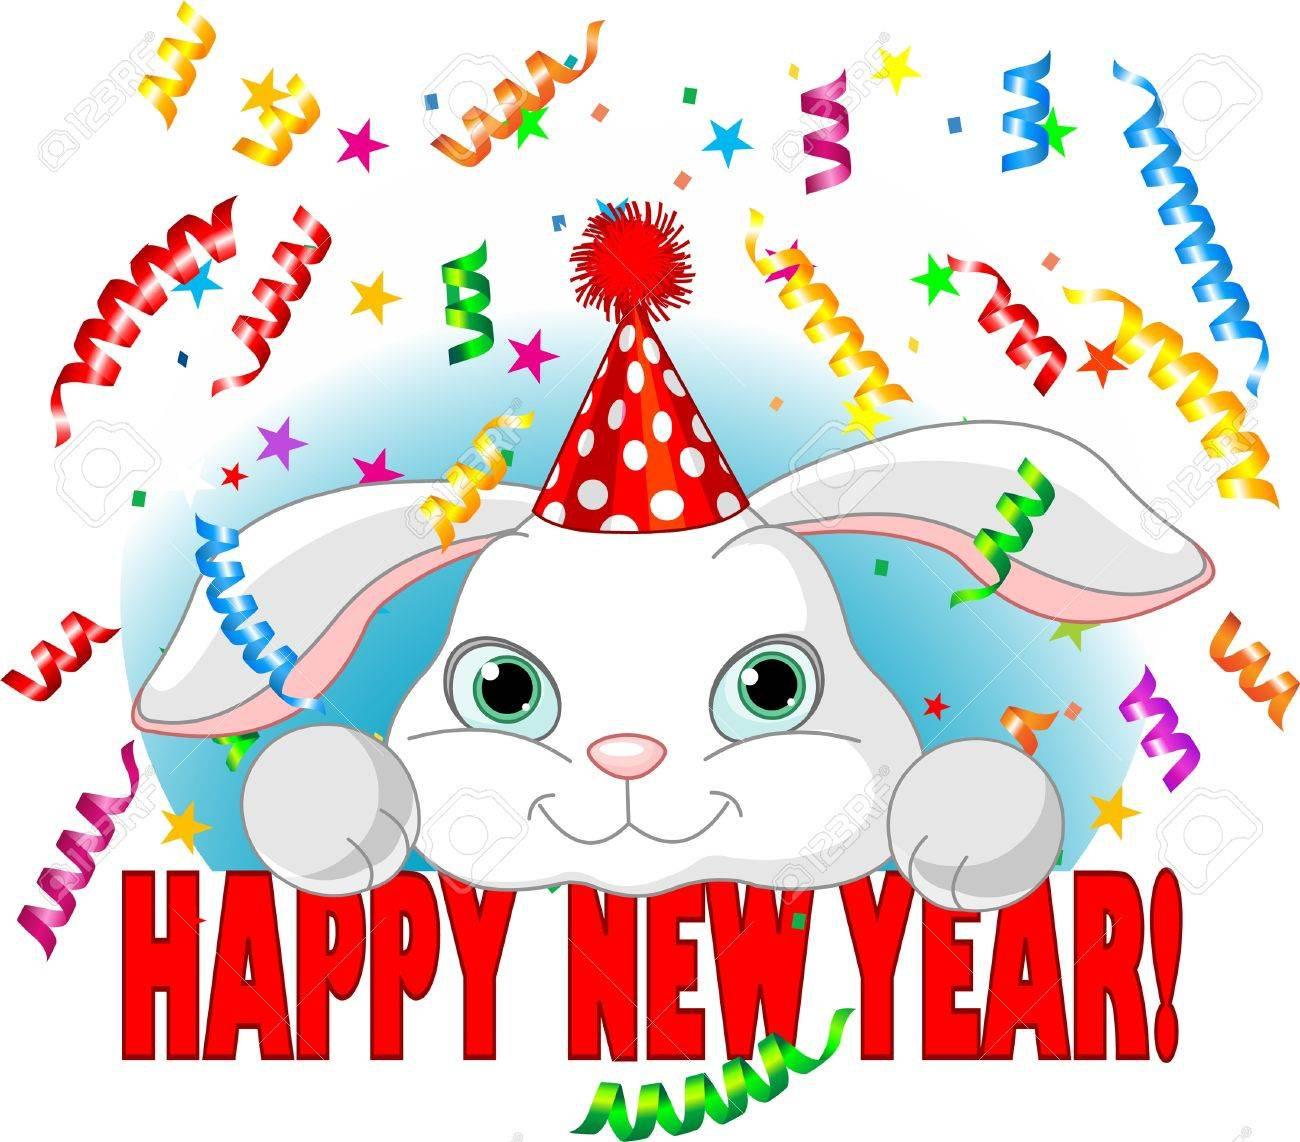 Cute white baby rabbit with party hat celebrating New Year Stock Vector - 8468979